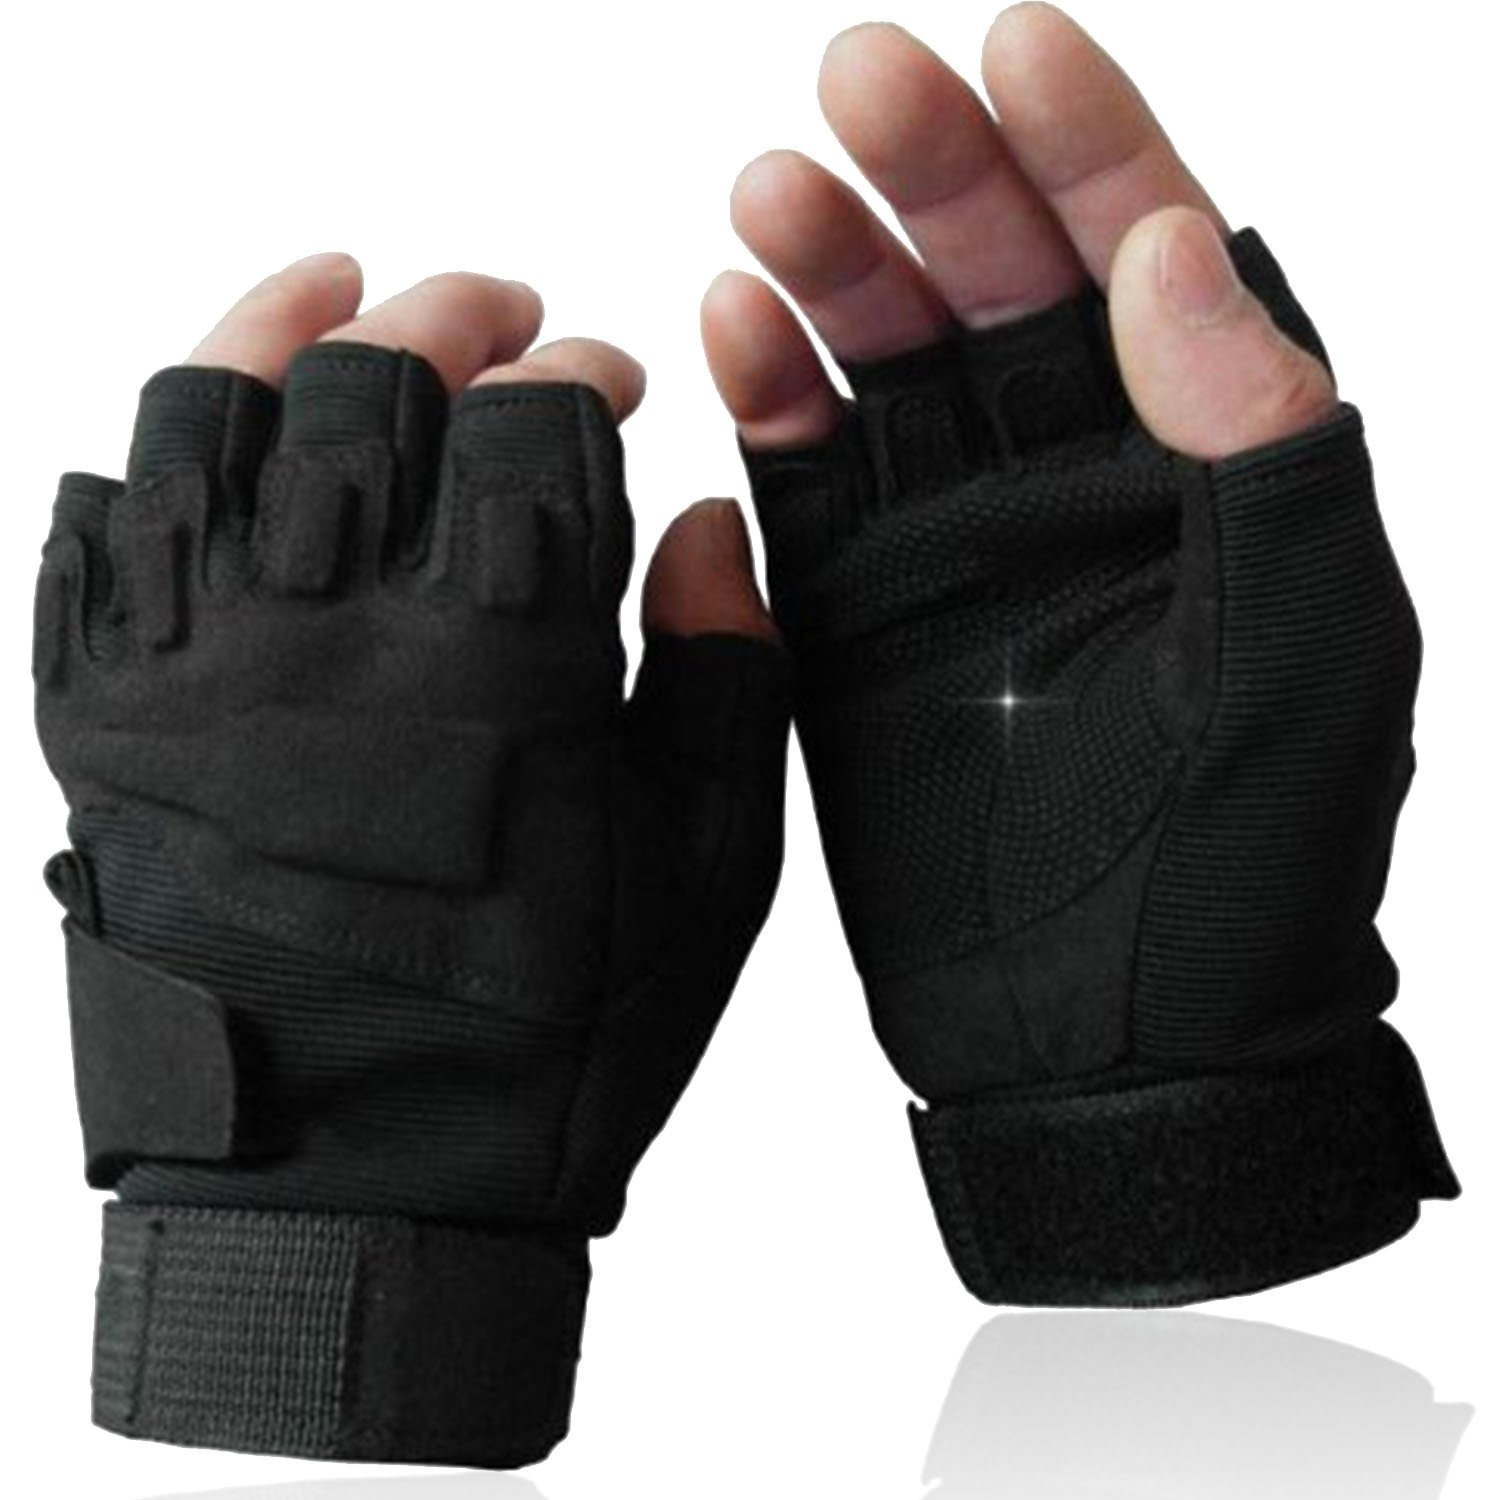 Black leather combat gloves - Black Hawk Tactical Gloves Military Army Paintball Airsoft Anti Skid Combat Shooting Work Bicycle Fingerless